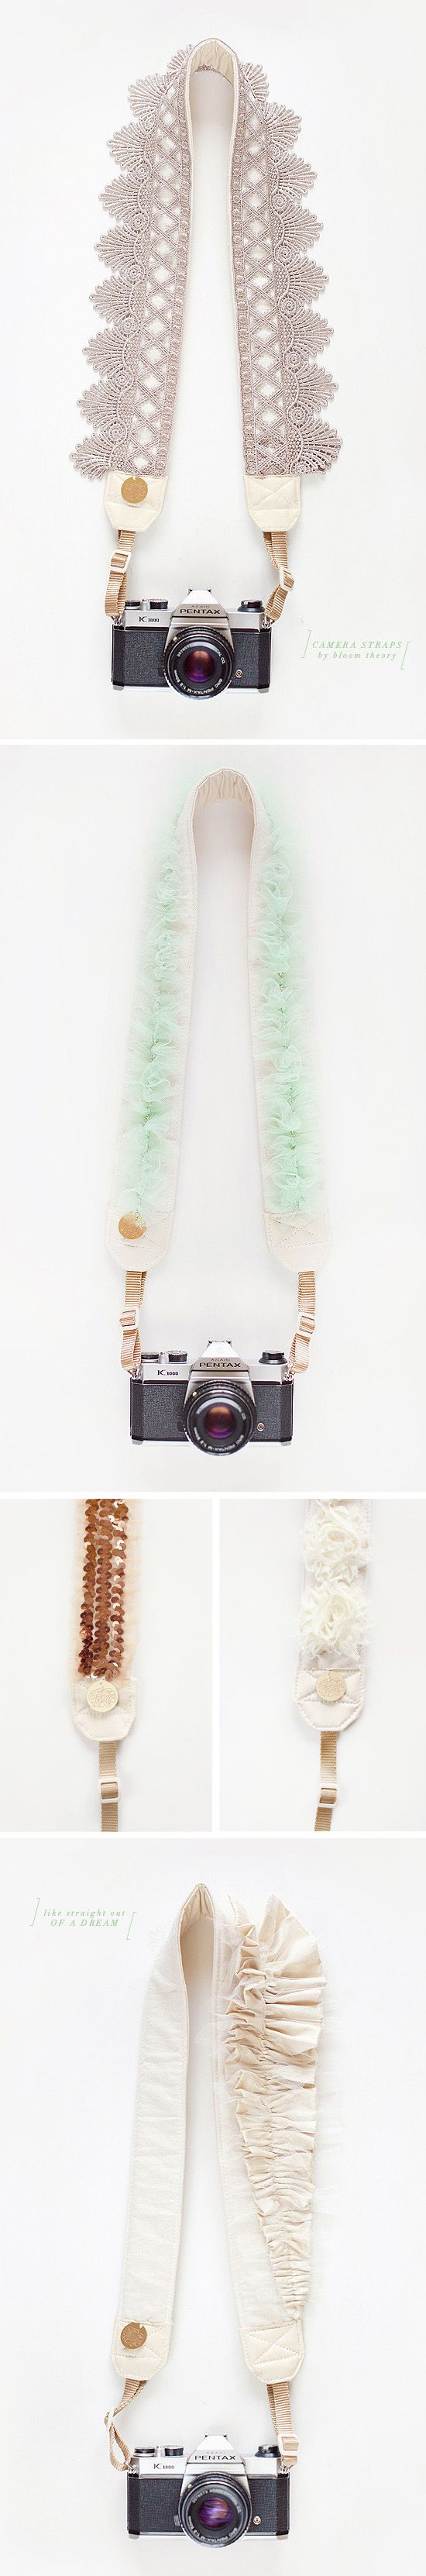 Camera straps from my dreams by the bloom theory.